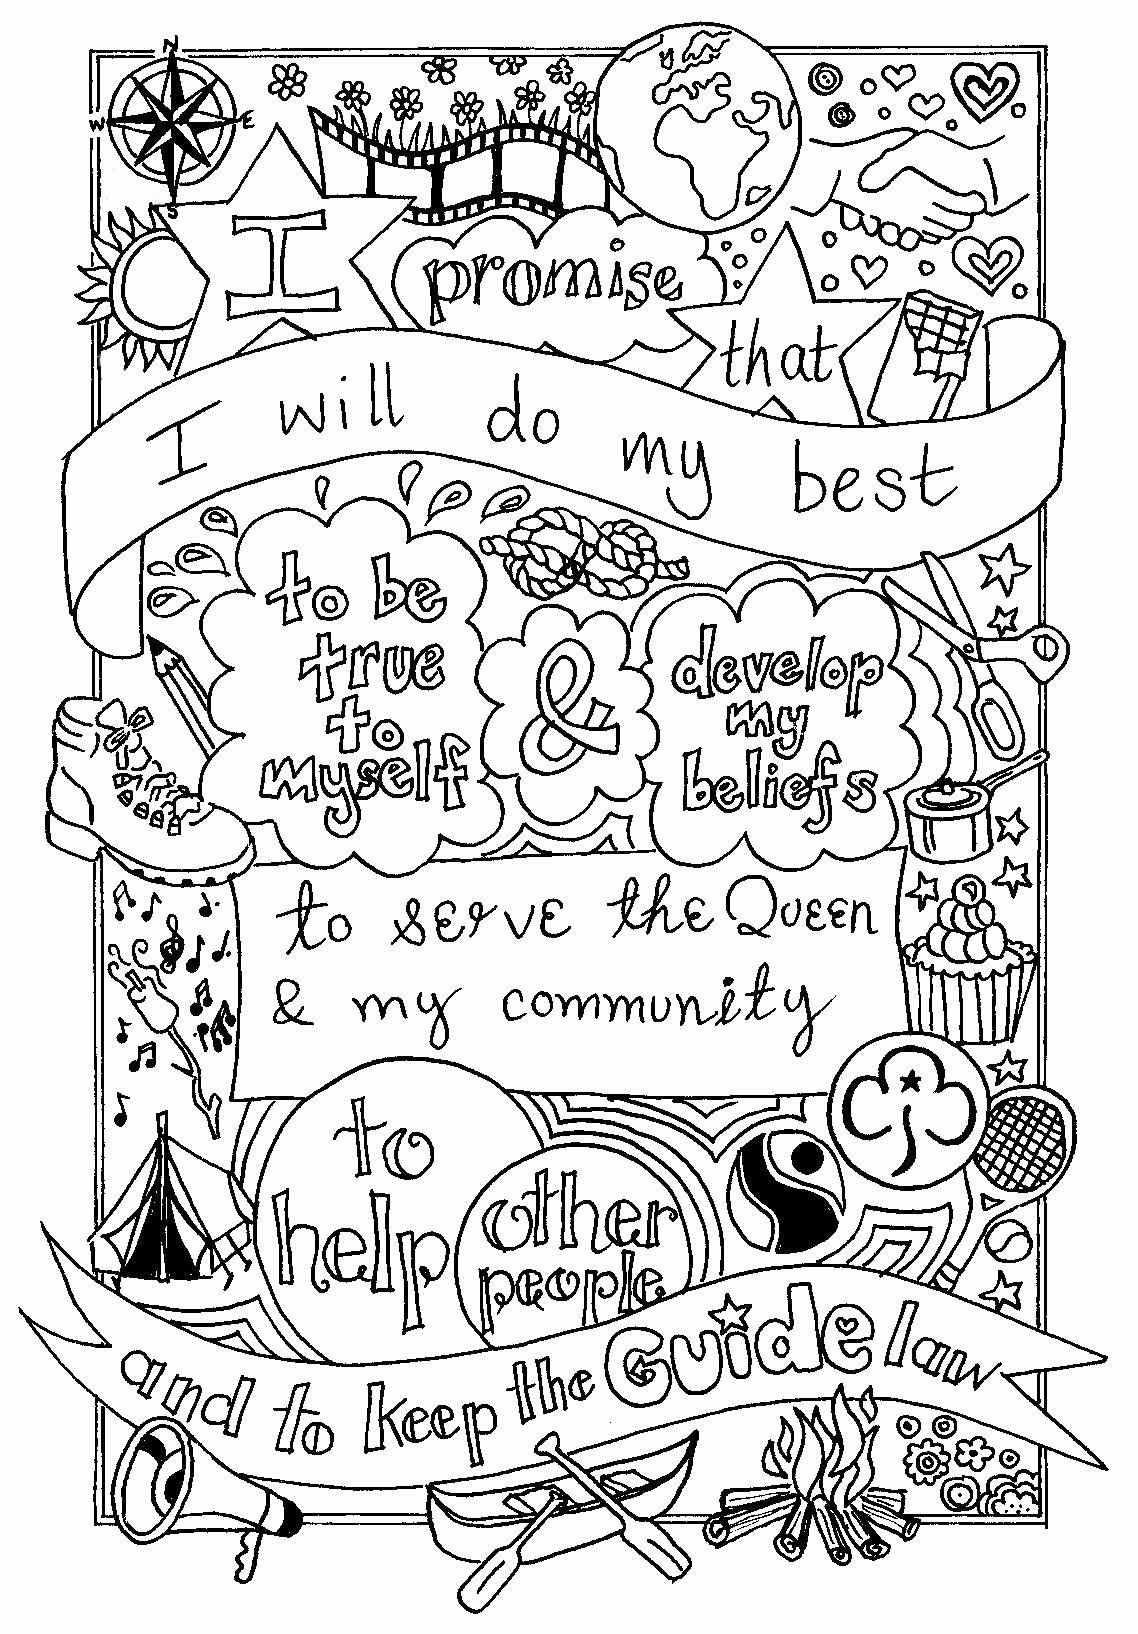 Girl Scout Promise Coloring Page Best Of Uk Guide Promise Colouring Sheet I Like The Uk Guide Girl Scout Promise Brownies Girl Guides Girl Scout Crafts